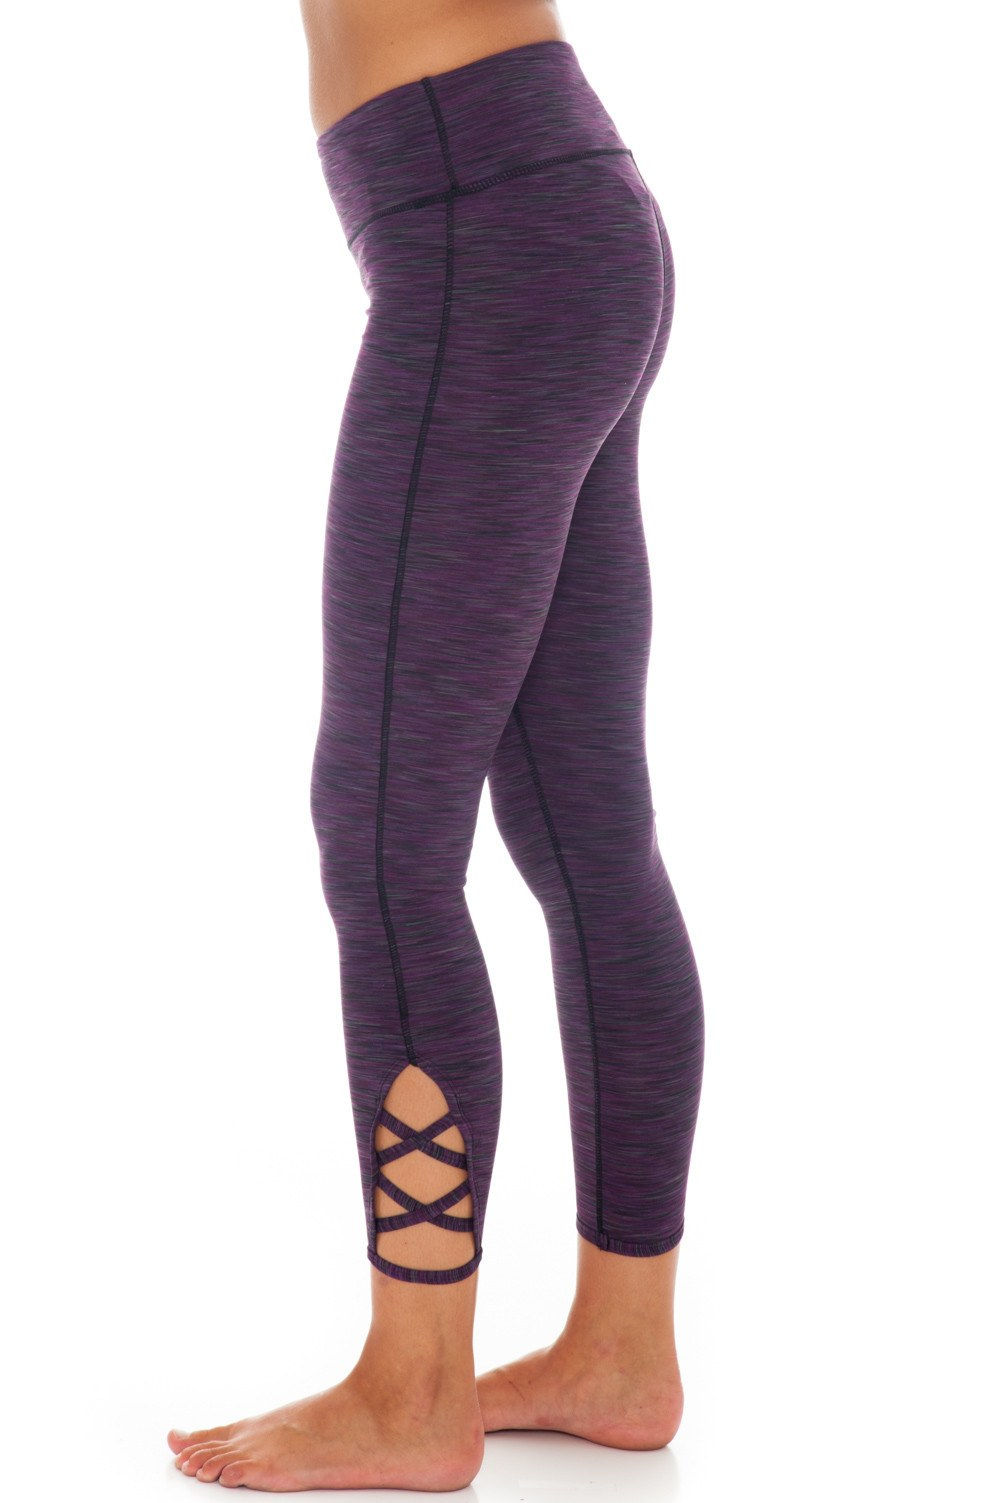 Legging - Criss-Cross Leg - 5